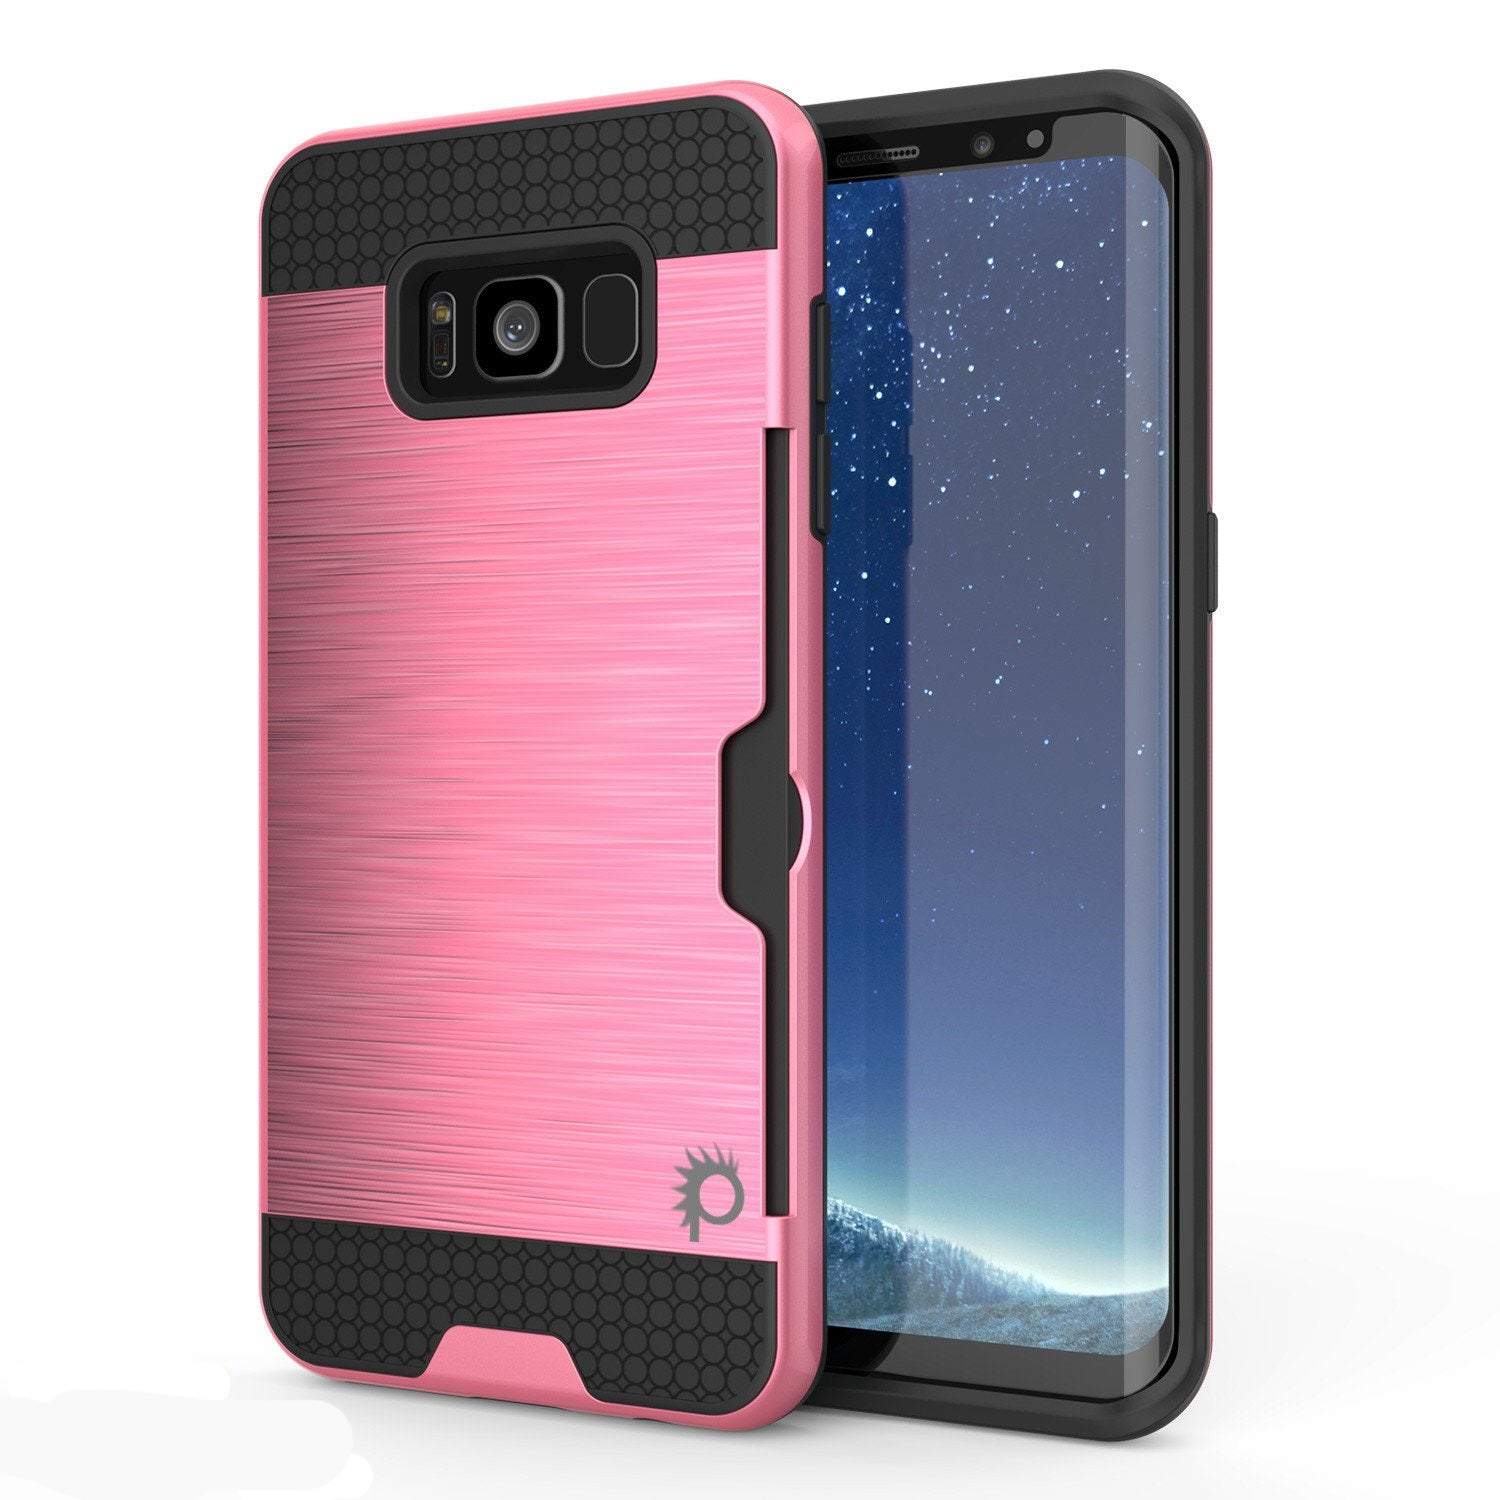 Galaxy S8 Case, PUNKcase [SLOT Series] Dual-Layer Armor Cover w/Integrated Anti-Shock System, Credit Card Slot & Screen Protector [Pink]